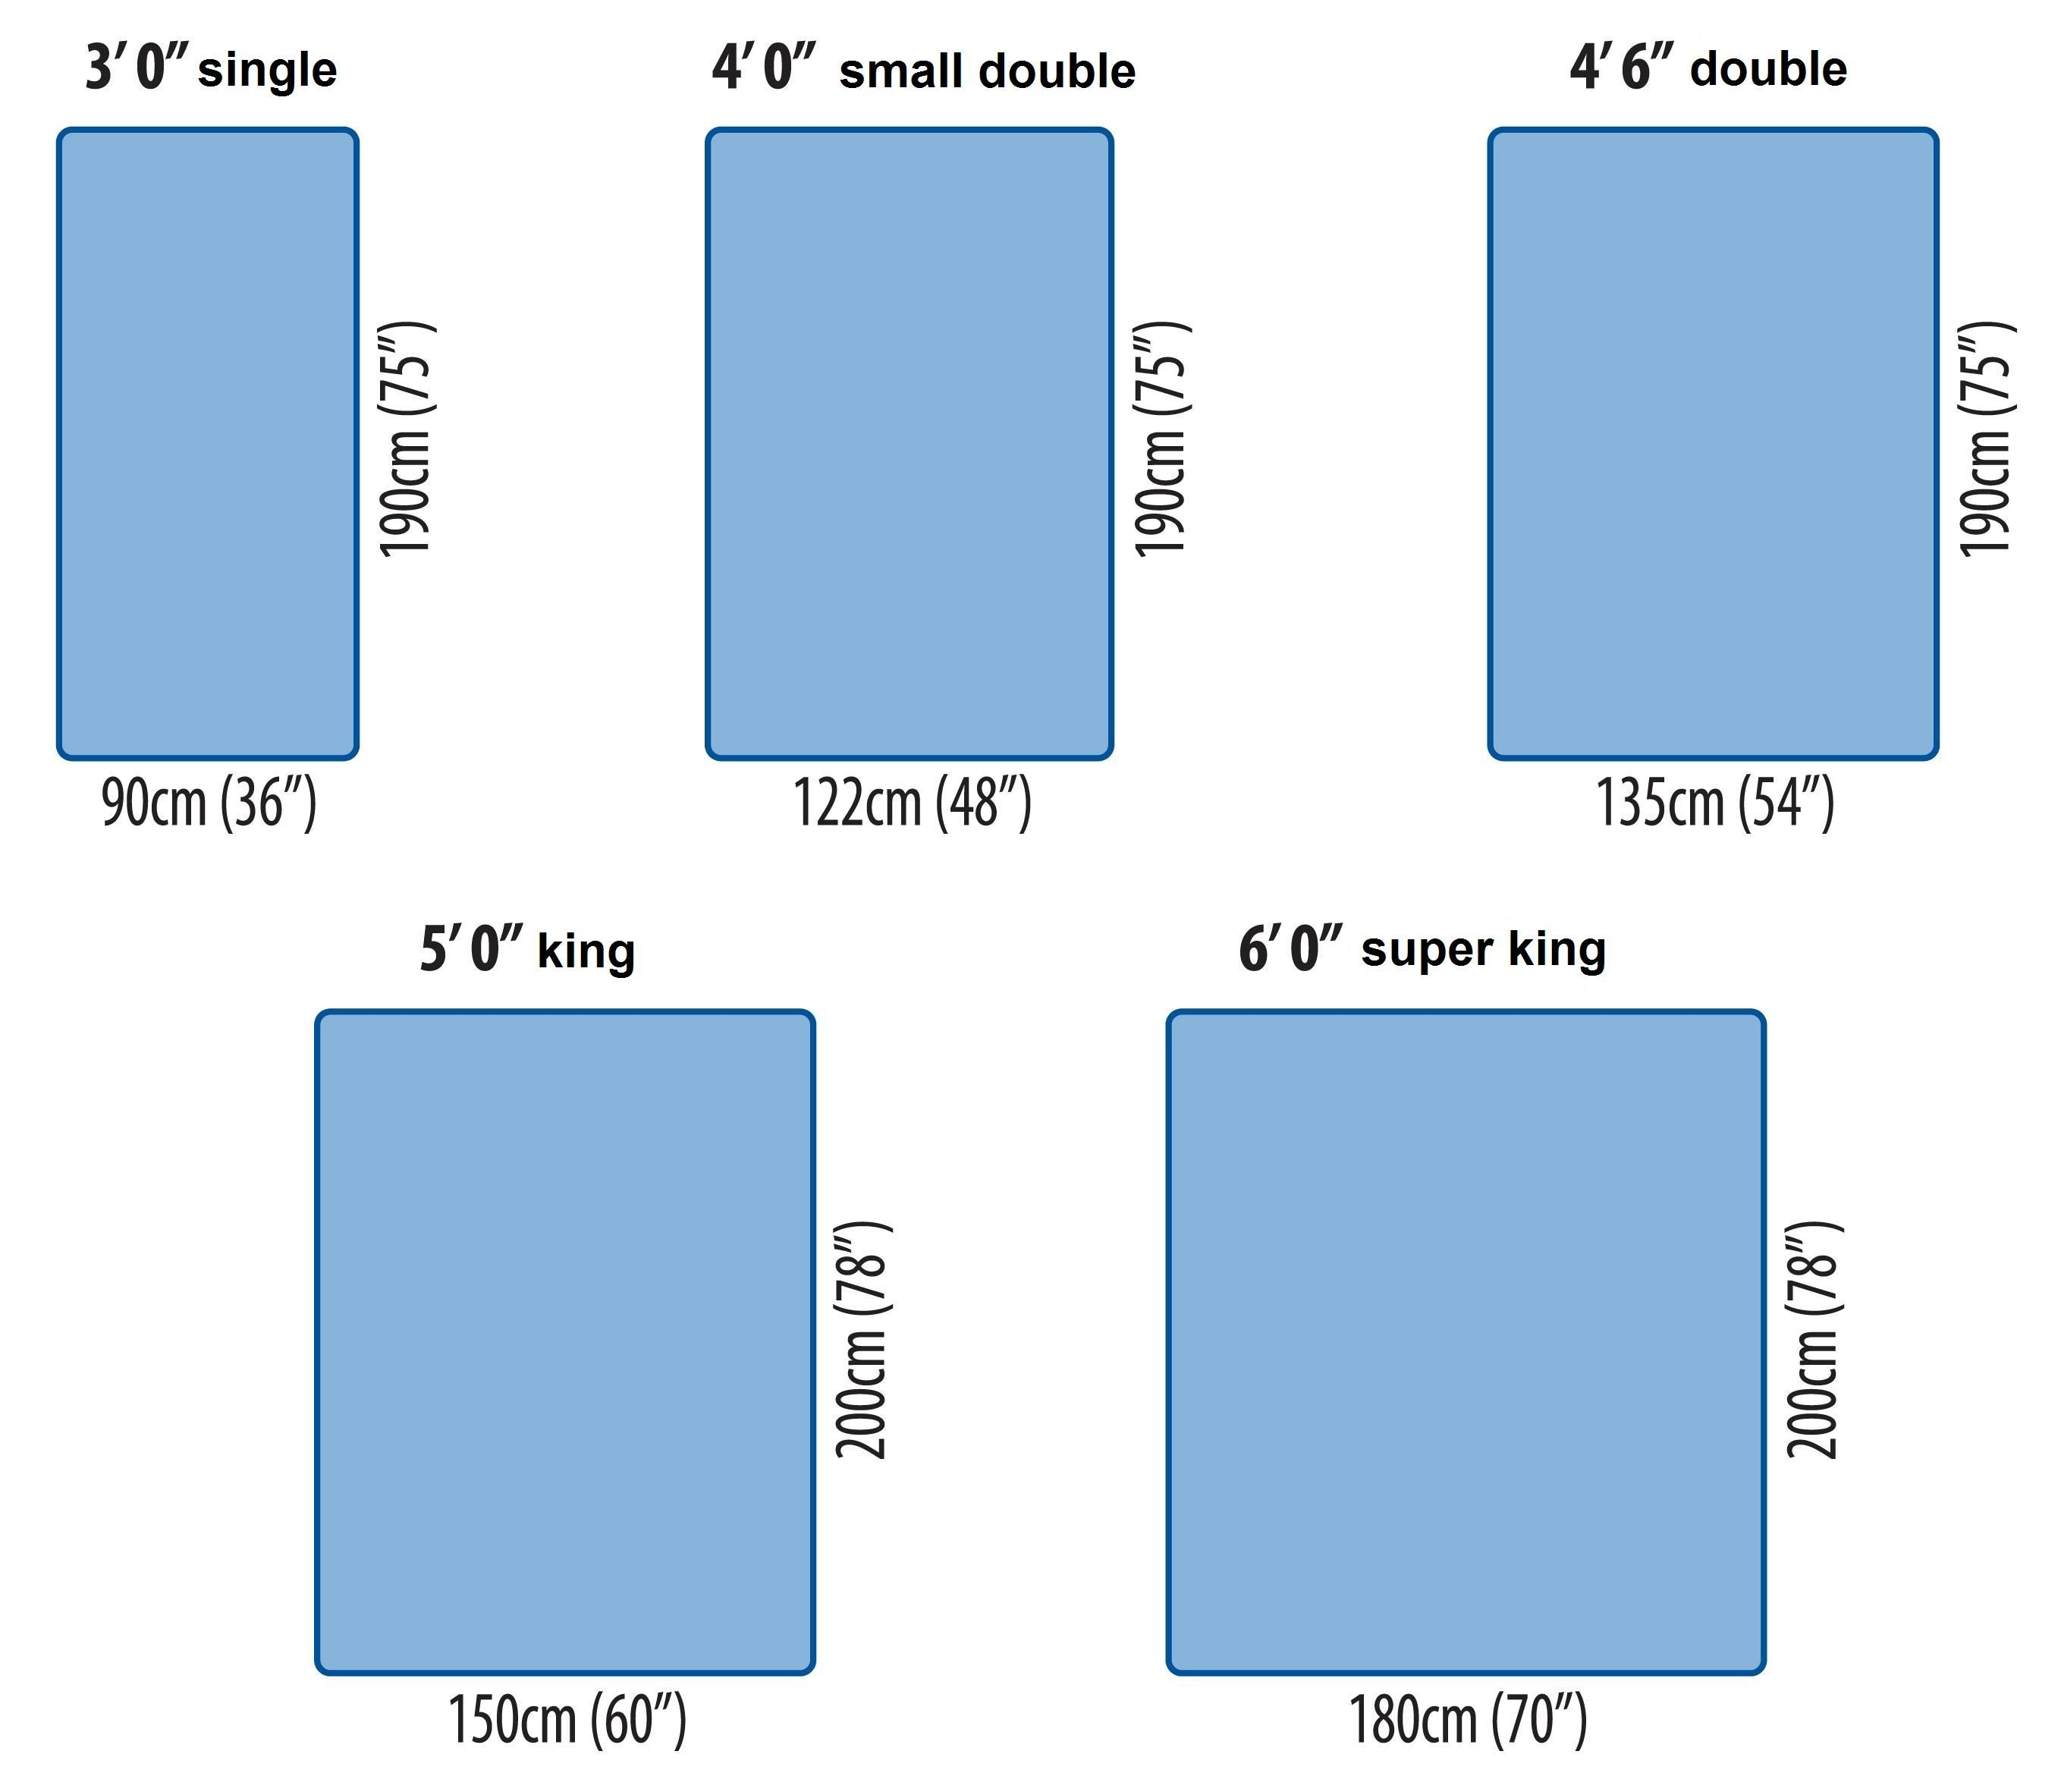 Queen Bed Size In Feet Bed Sizes Are Confusing Interior Design Major King Size Bed